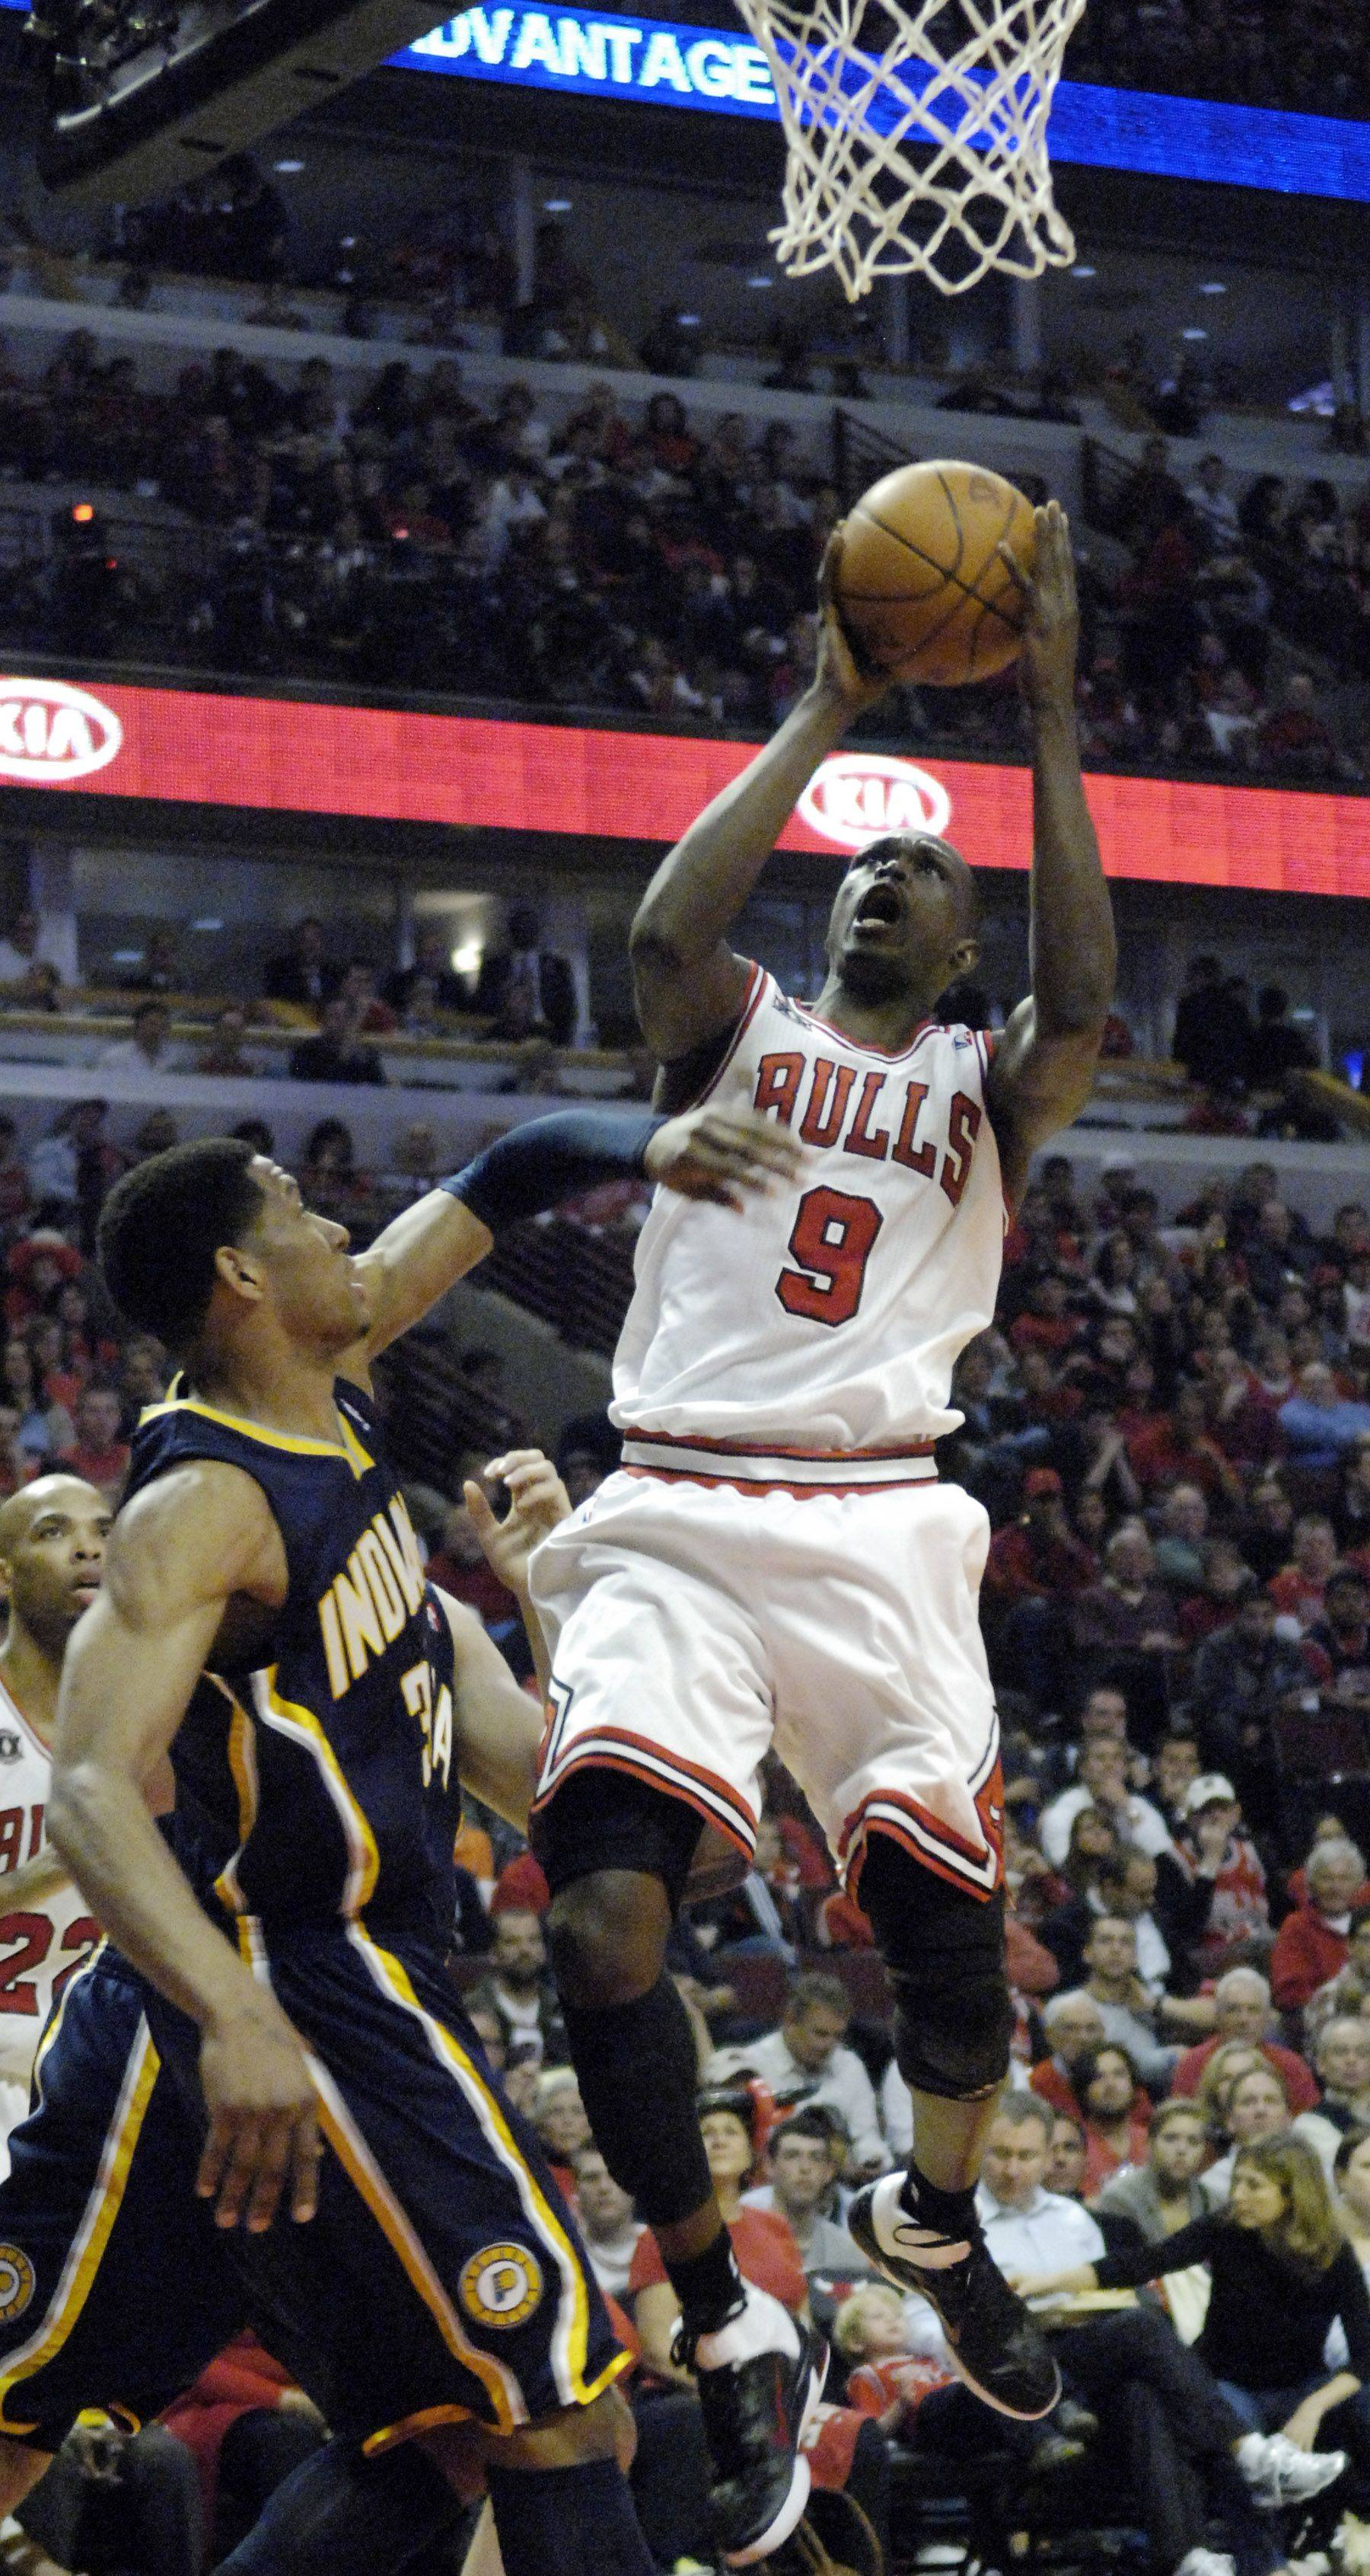 Chicago Bulls small forward Luol Deng (9) glides in for a layup during Game One of the NBA Eastern Conference Quarterfinals Saturday at the United Center in Chicago.